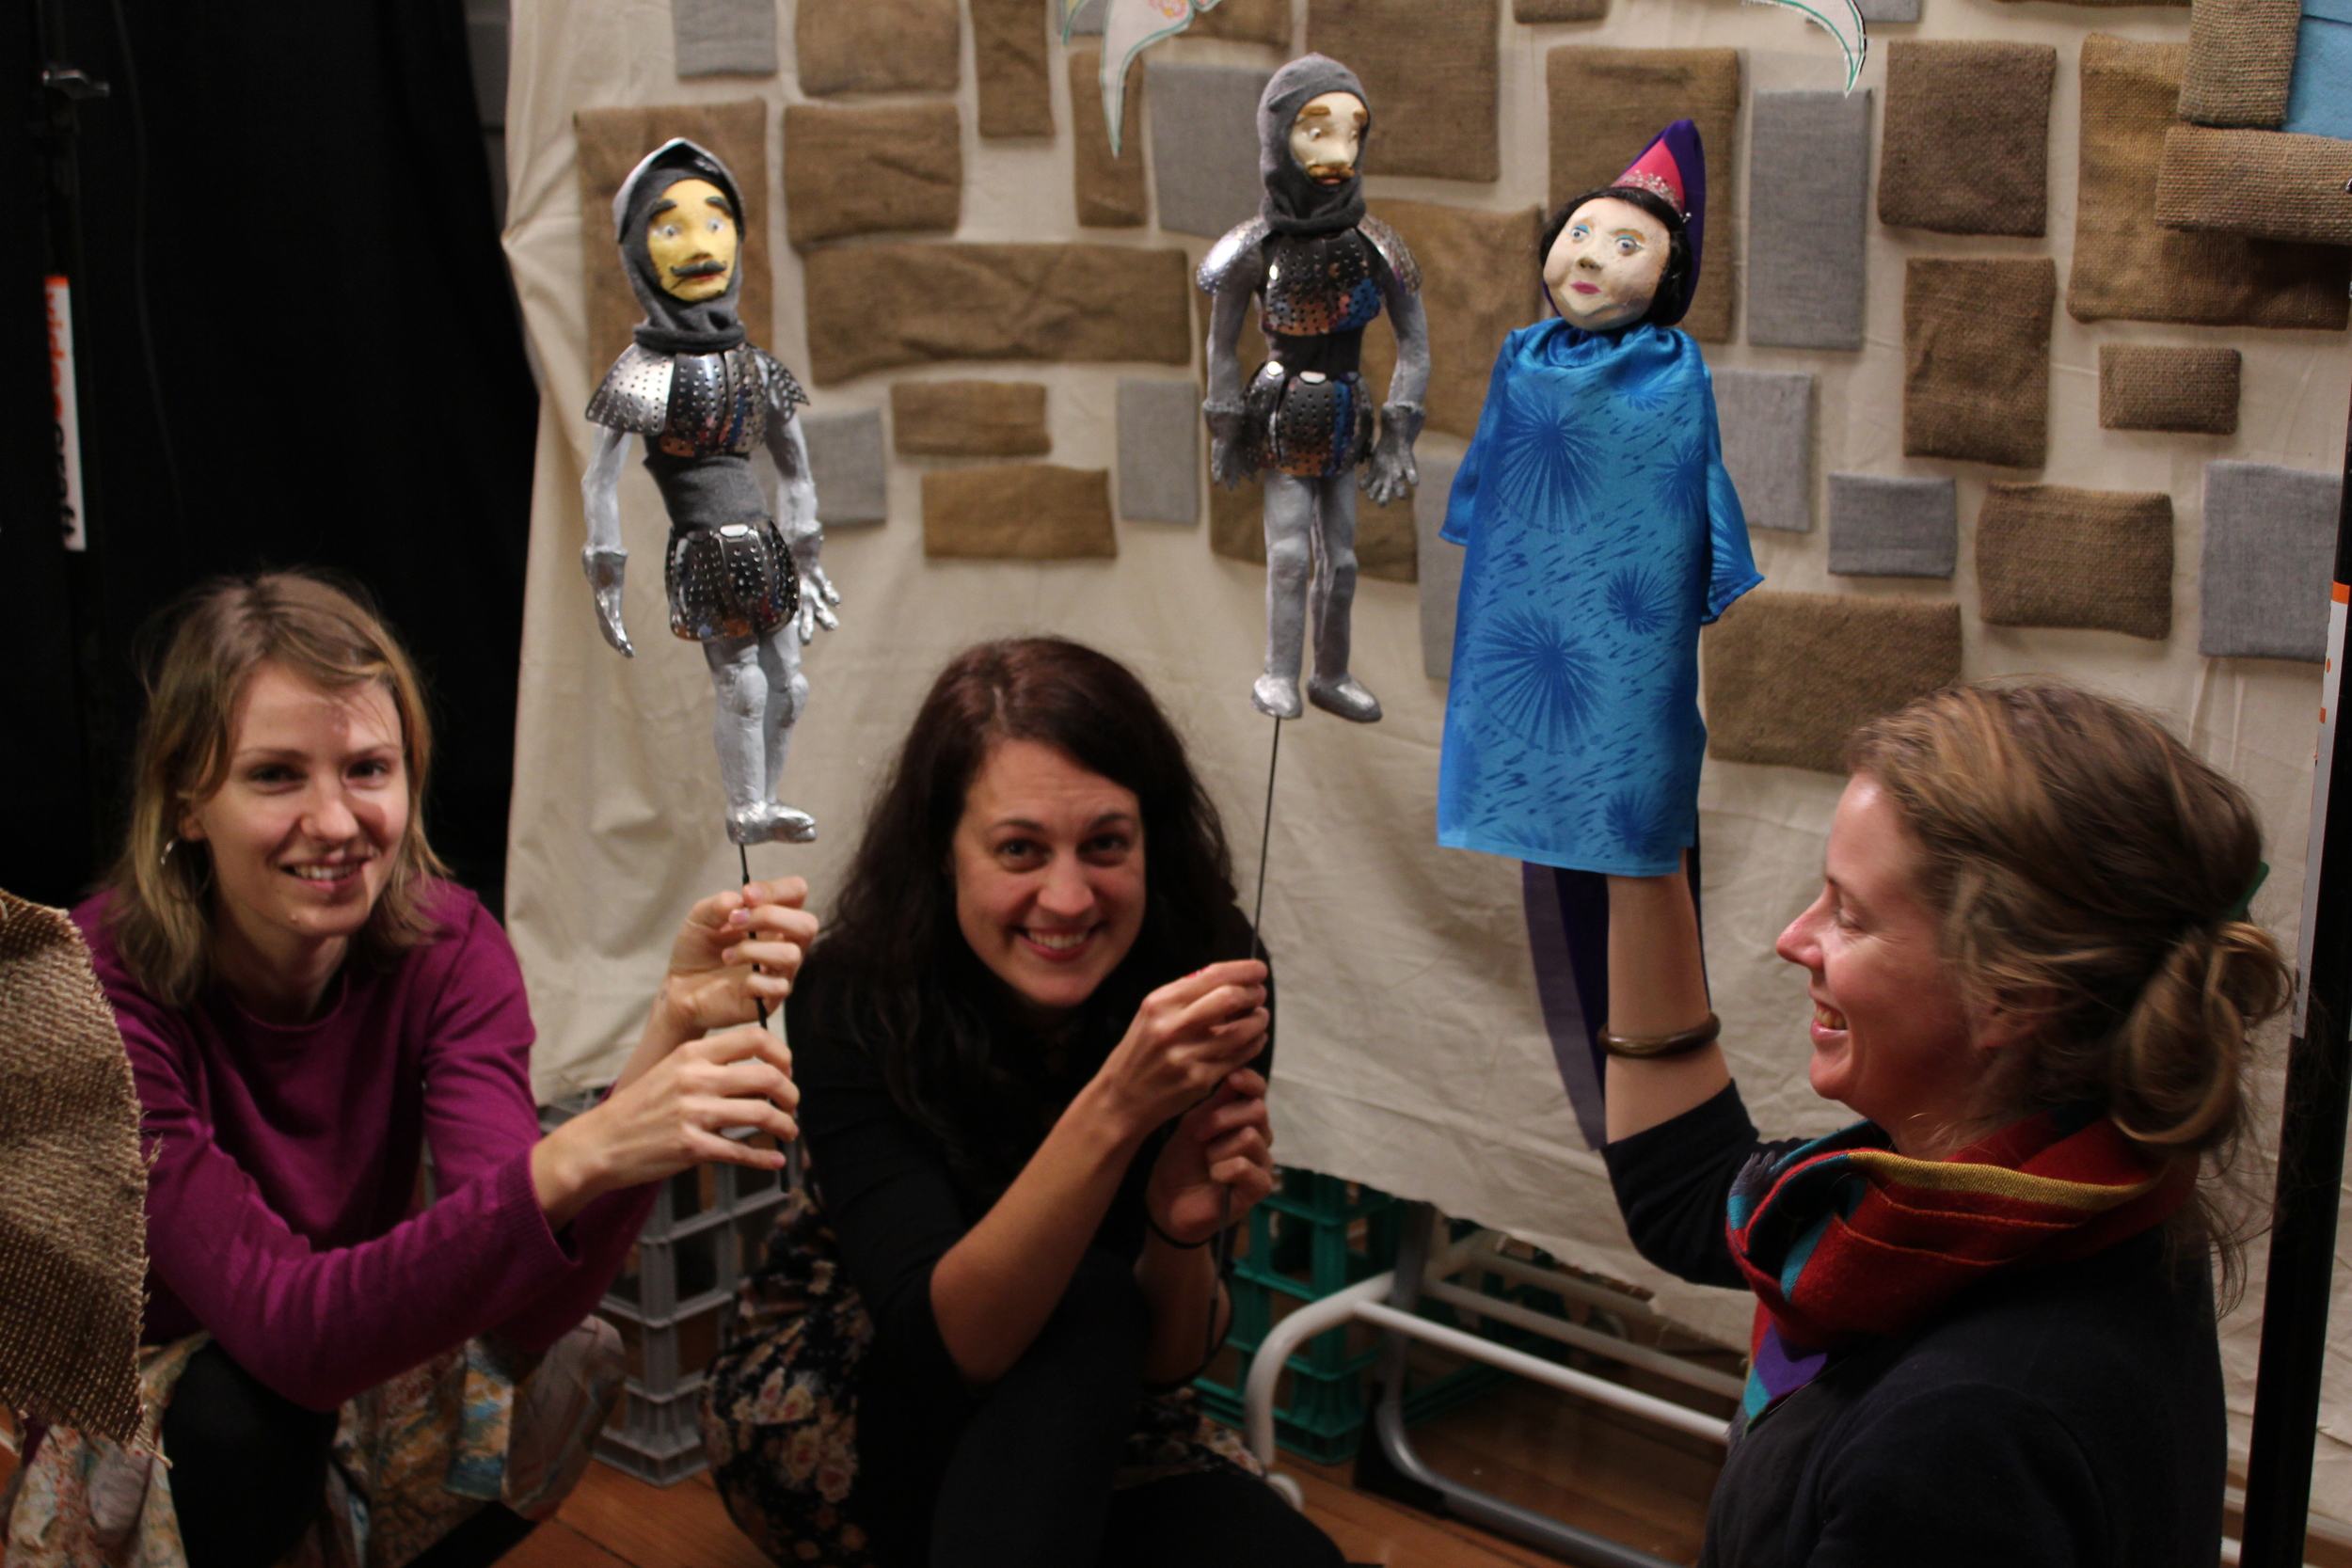 The Seam play with the puppets